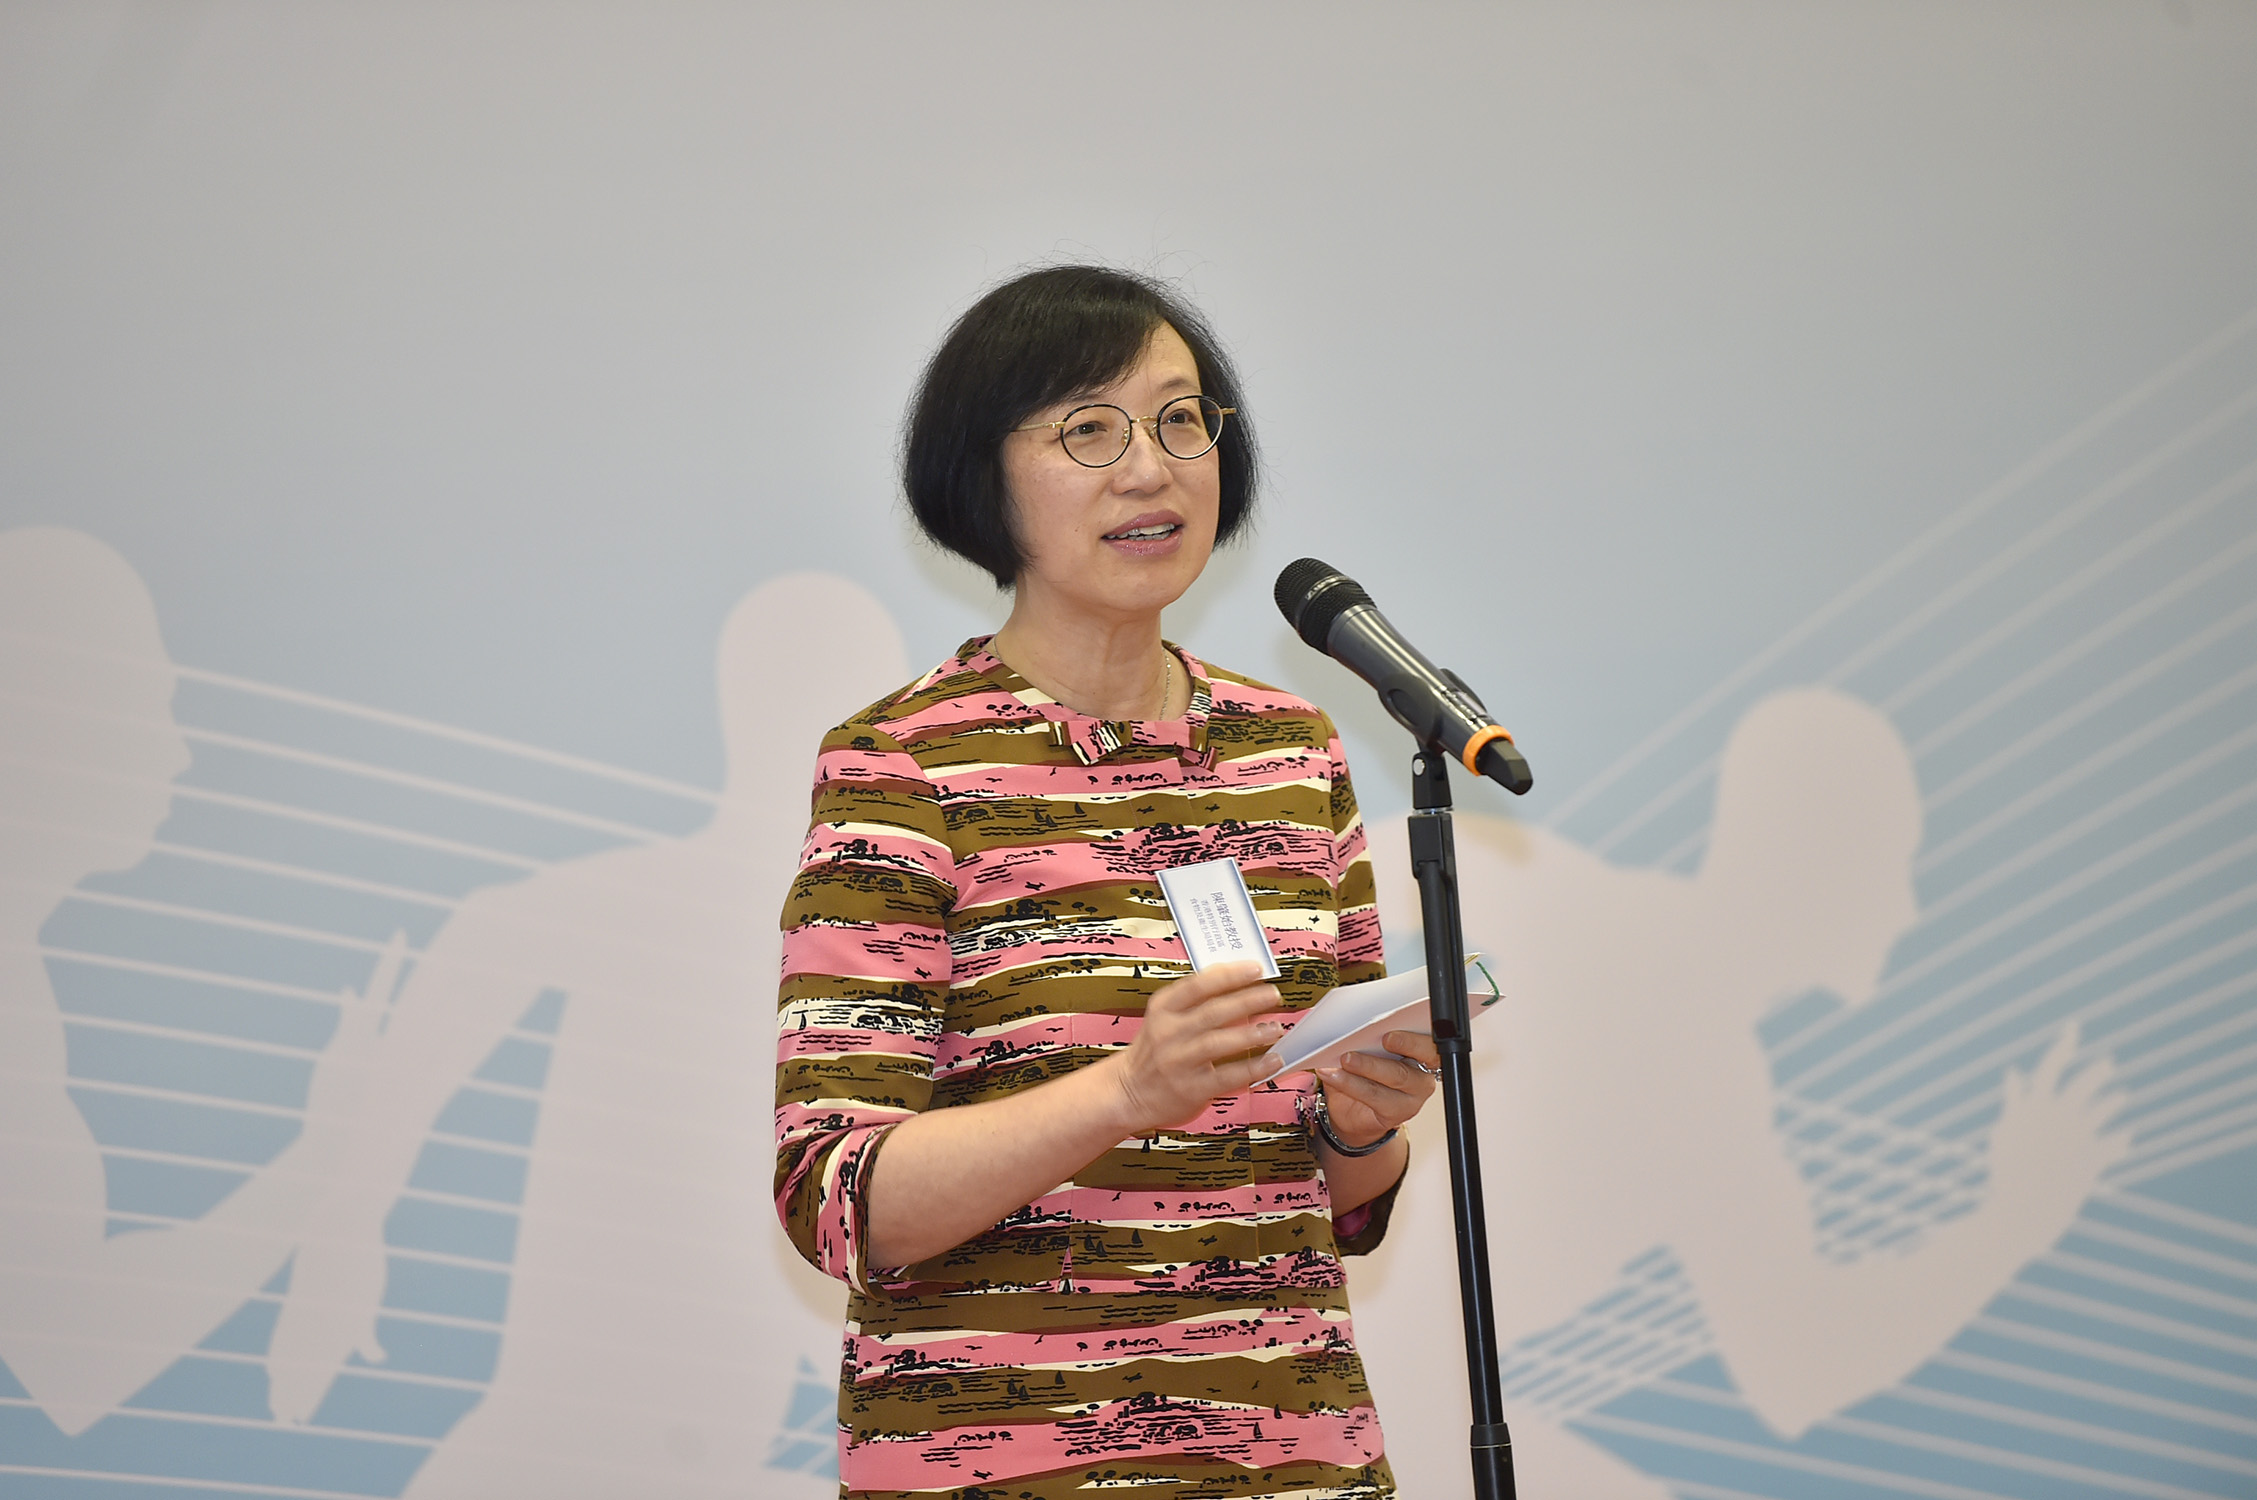 Professor Sophia CHAN remarks that the overweight and obesity problems among Hong Kong people are alarming. She encourages the general public to maintain a healthy diet and exercise regularly.